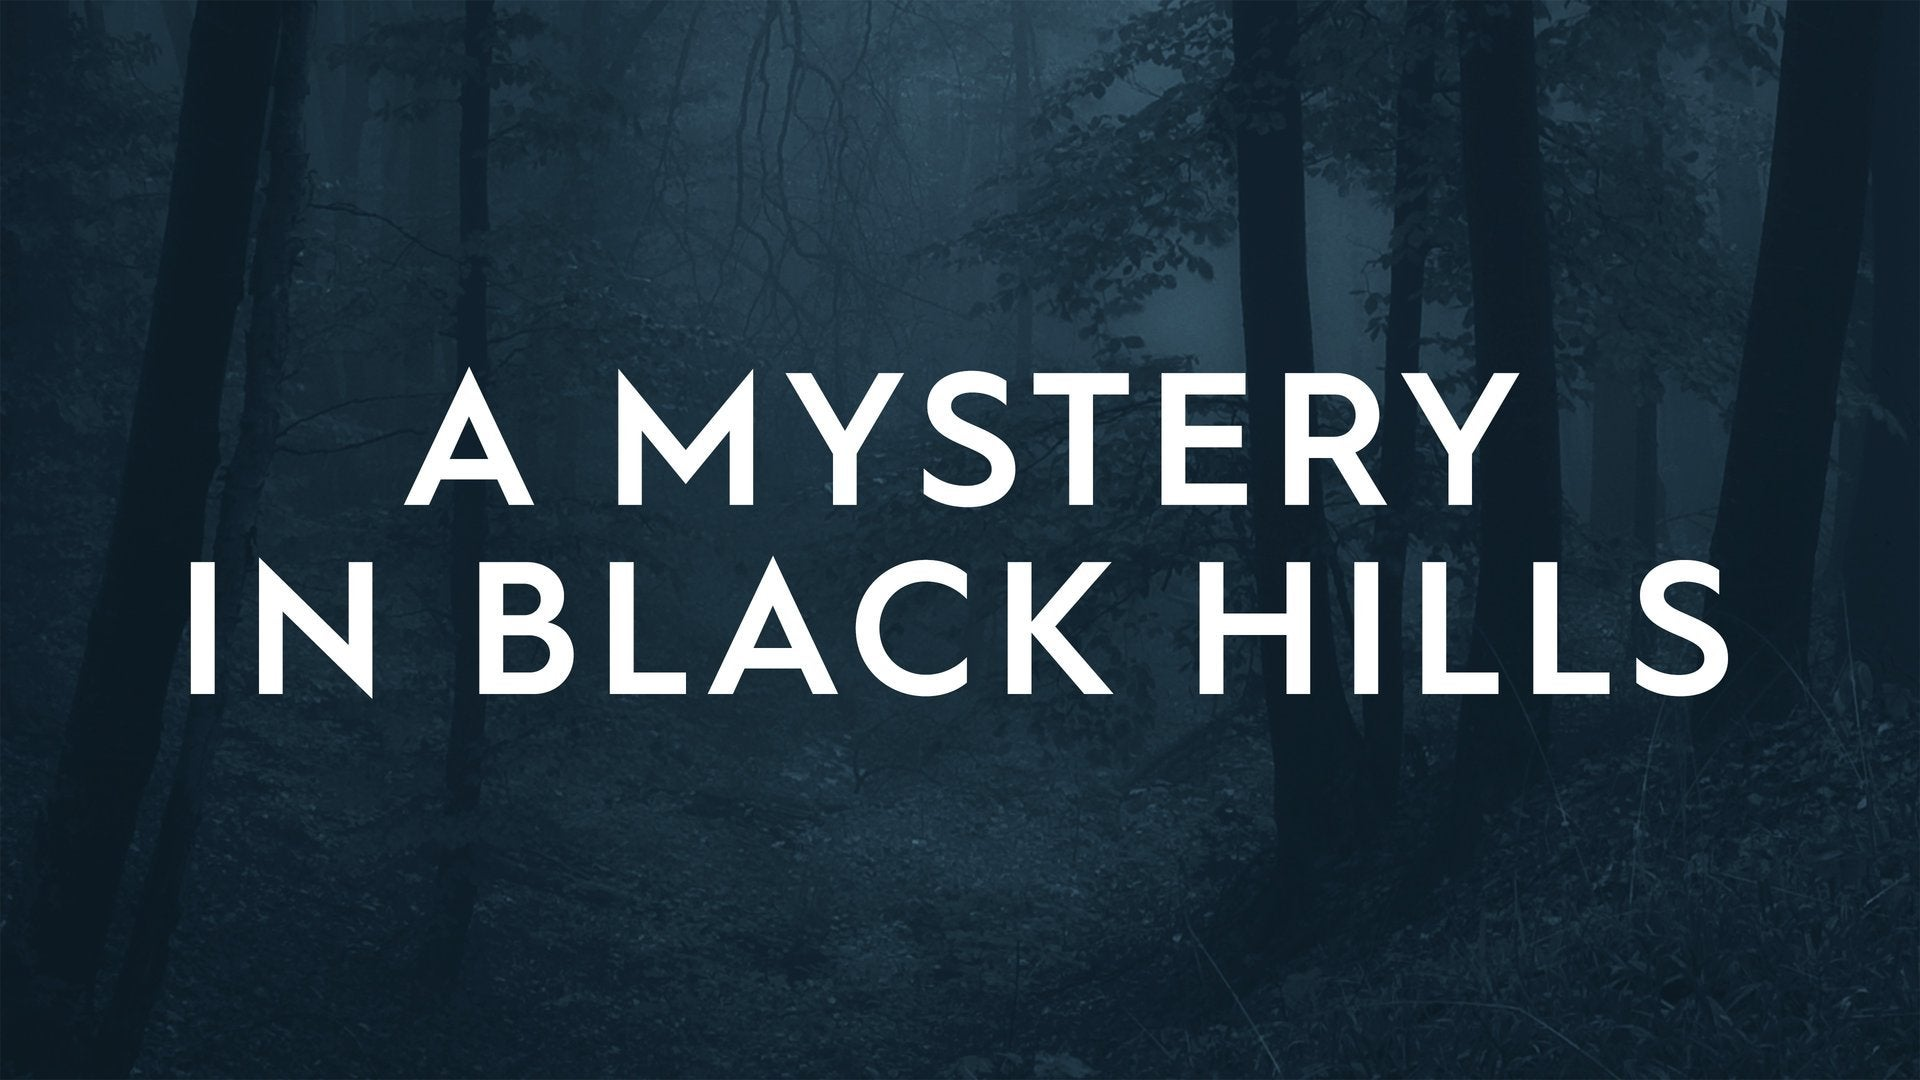 A Mystery in Black Hills